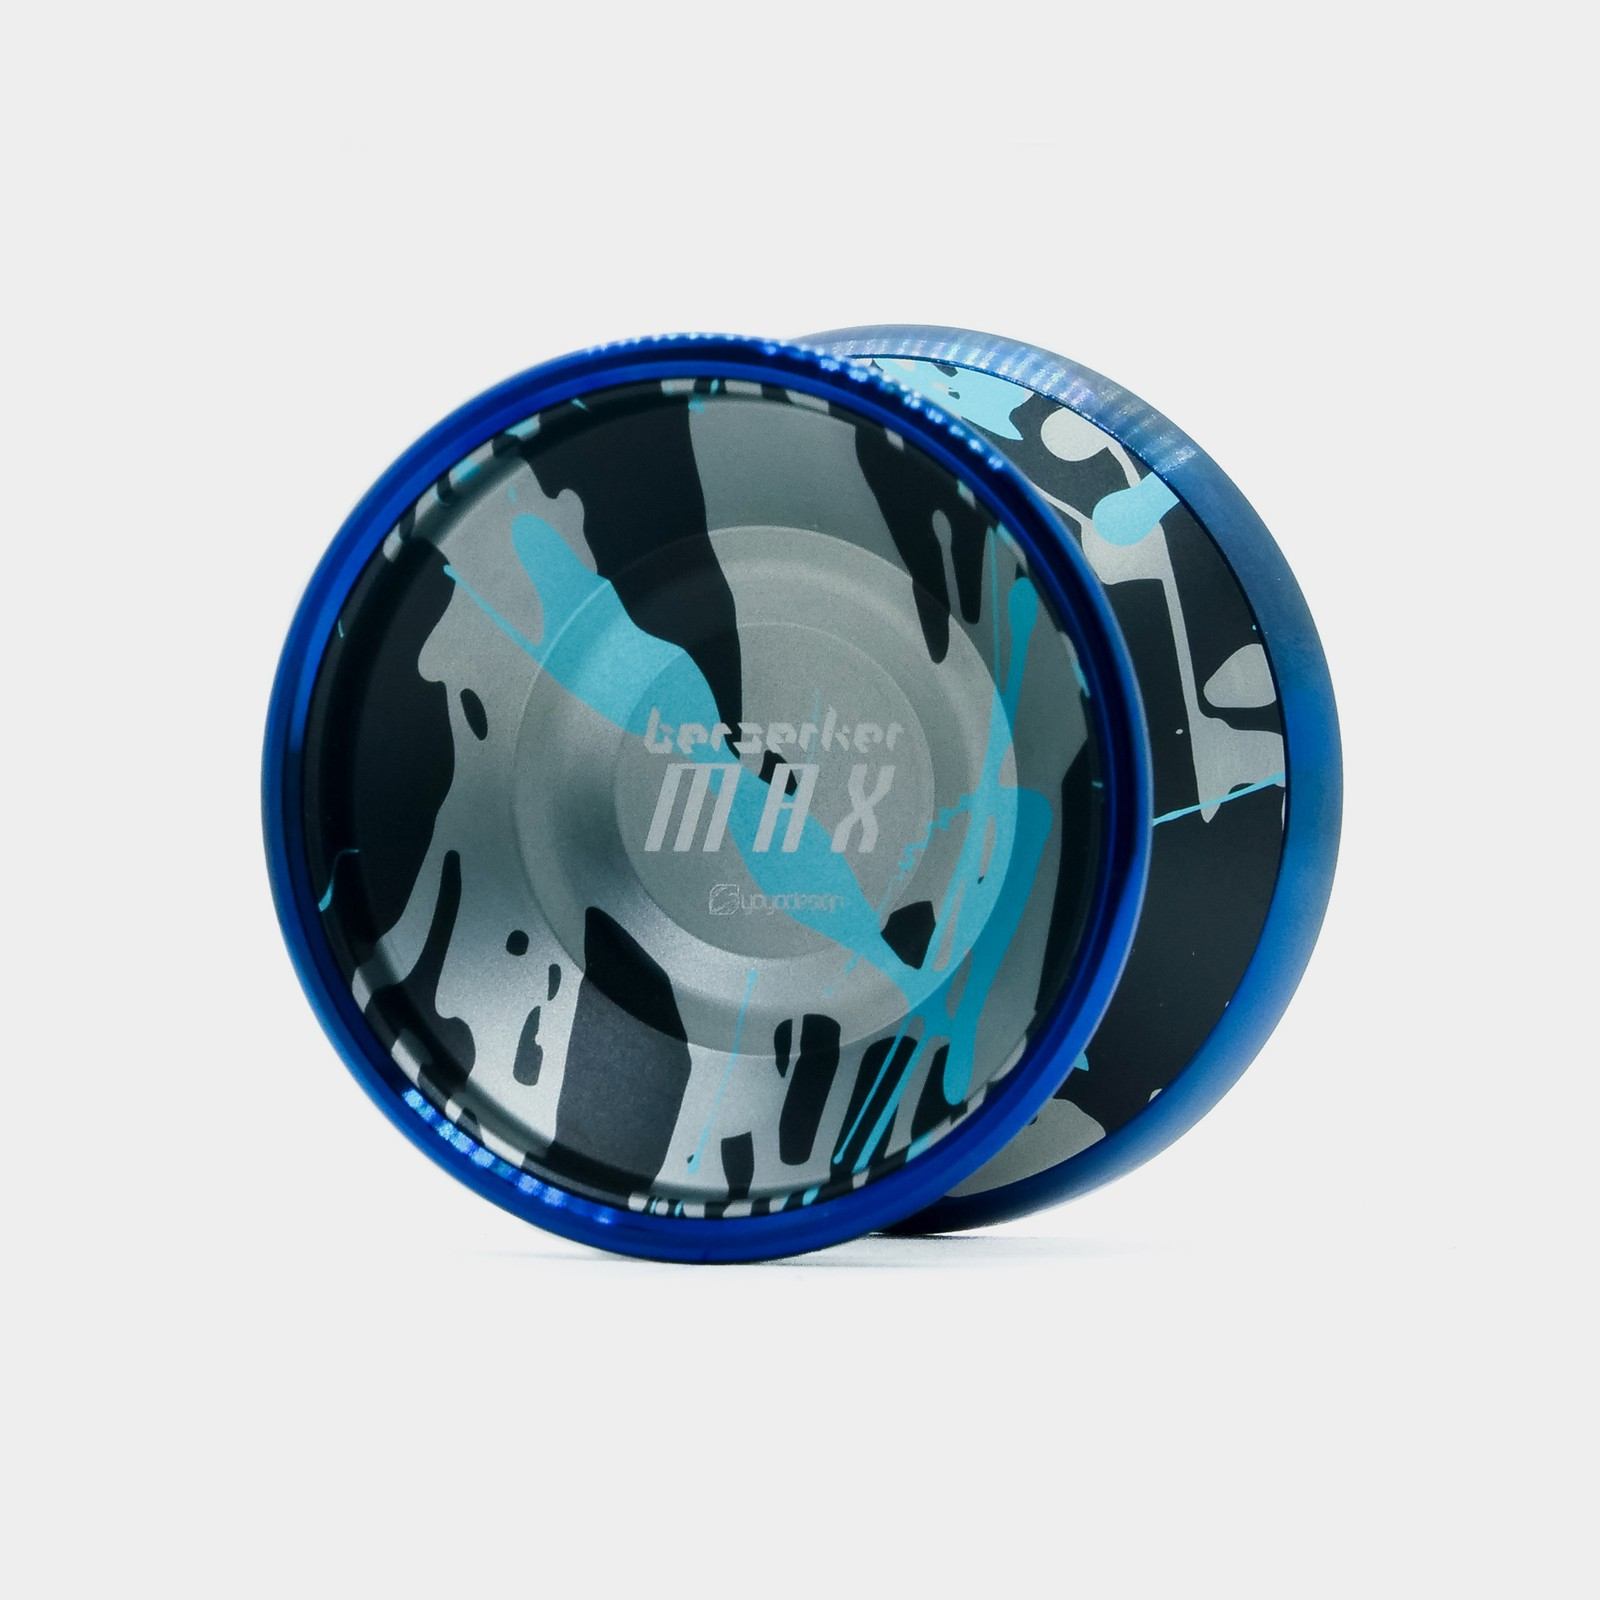 Berserker Max yo-yo in Black / Silver / Blue by C3yoyodesign